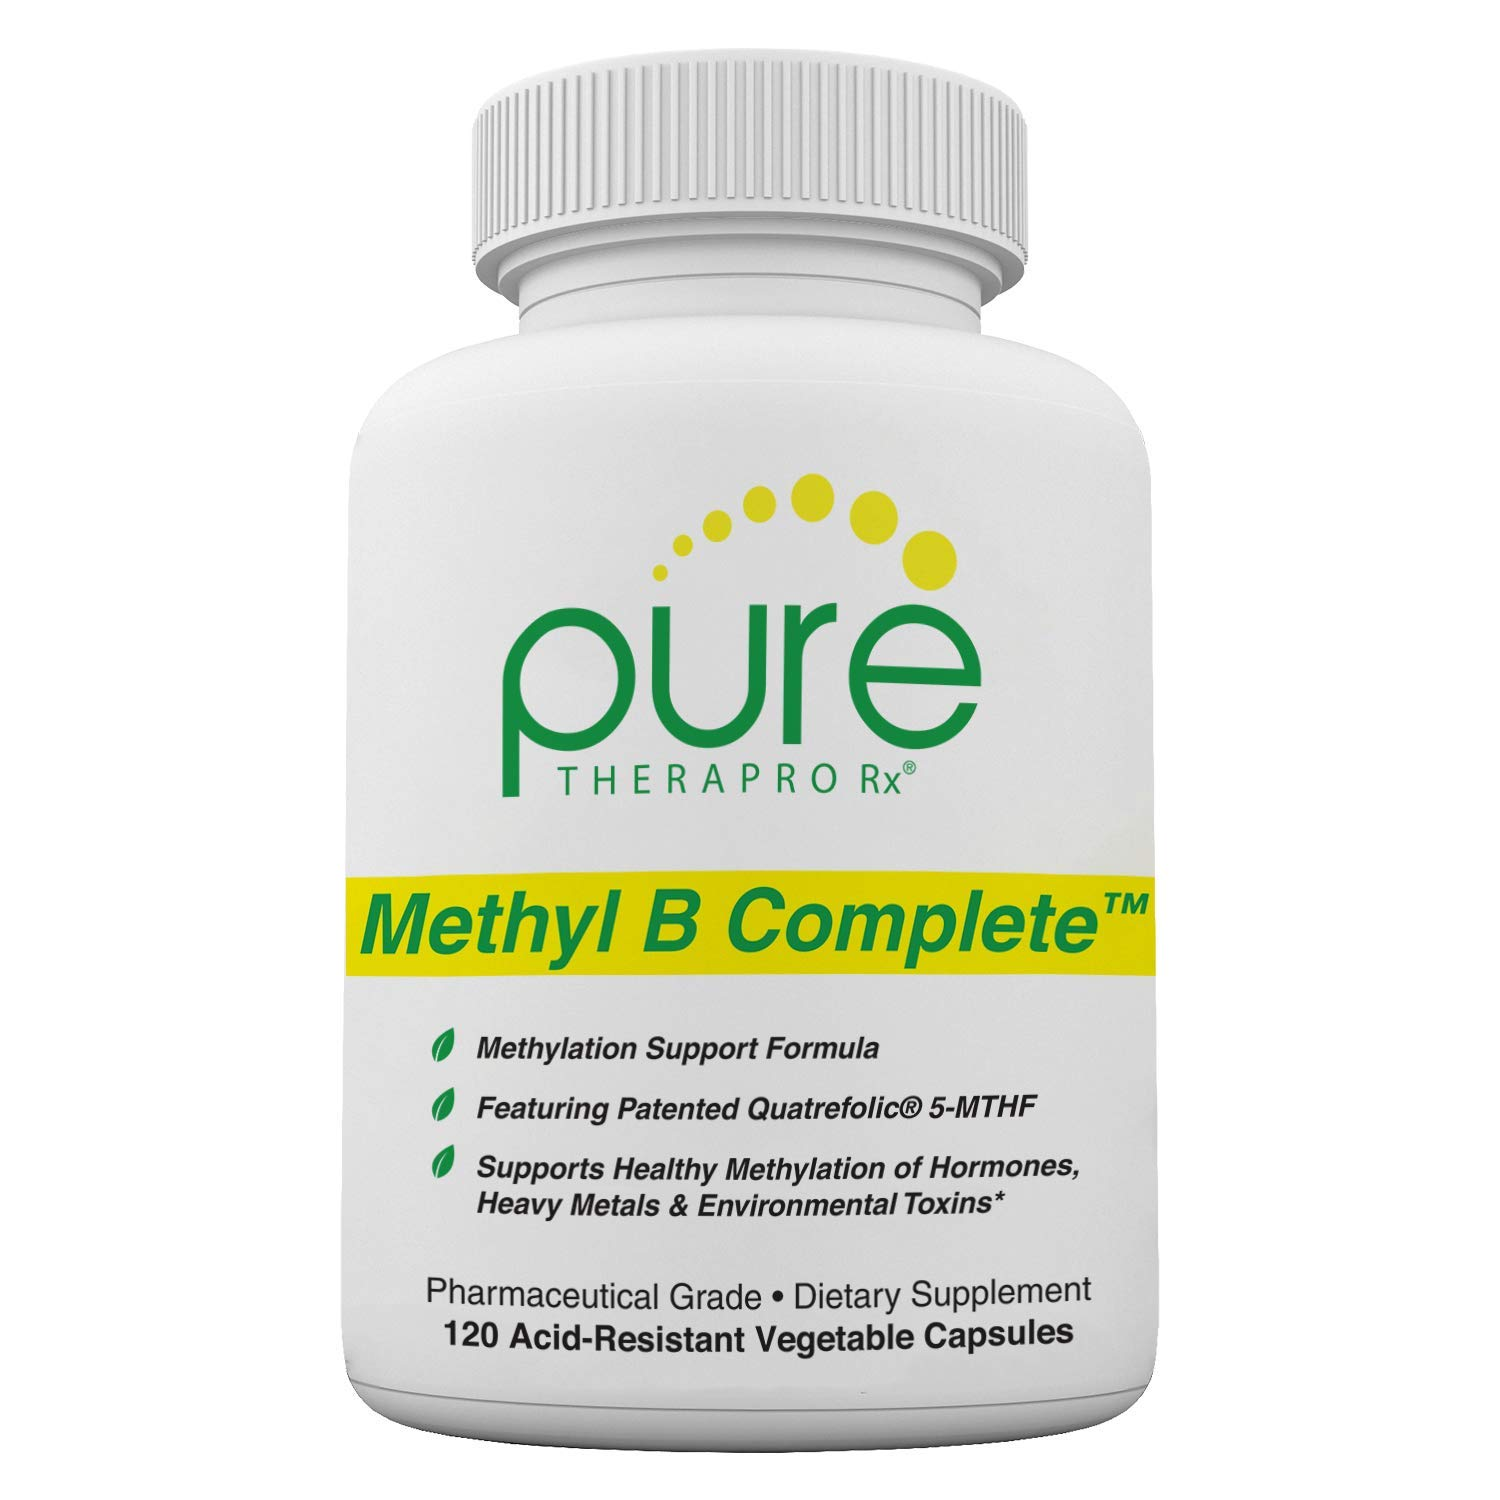 Methyl B Complete - 120 Vegetable Capsules | Optimal Methylation Support Supplement with Quatrefolic 5-MTHF (Active folate), Methylcobalamin (Active B12), B2, B6, and TMG | Pharmaceutical Grade by Pure Therapro Rx